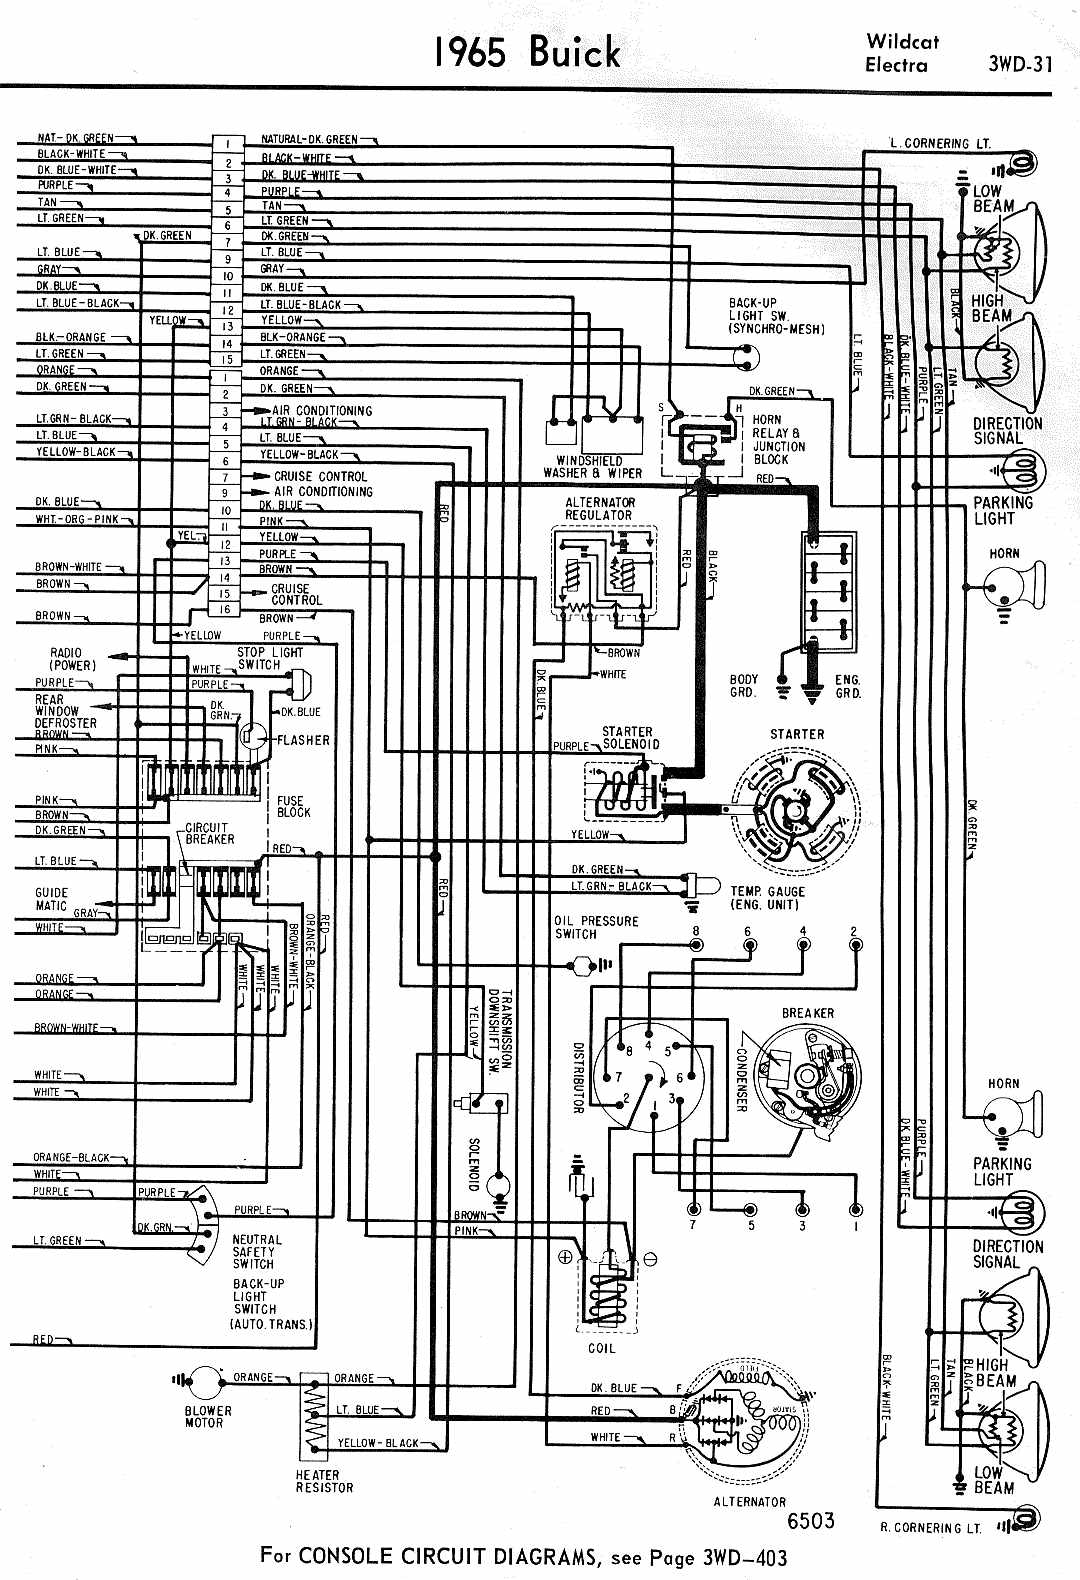 Engine Wiring Diagram 1968 Buick Skylark Wire Center 10064235mmaluminumboxcircuitboardenclosurecaseproject Car Manuals Diagrams Pdf Fault Codes Rh Automotive Net Lincoln 1984